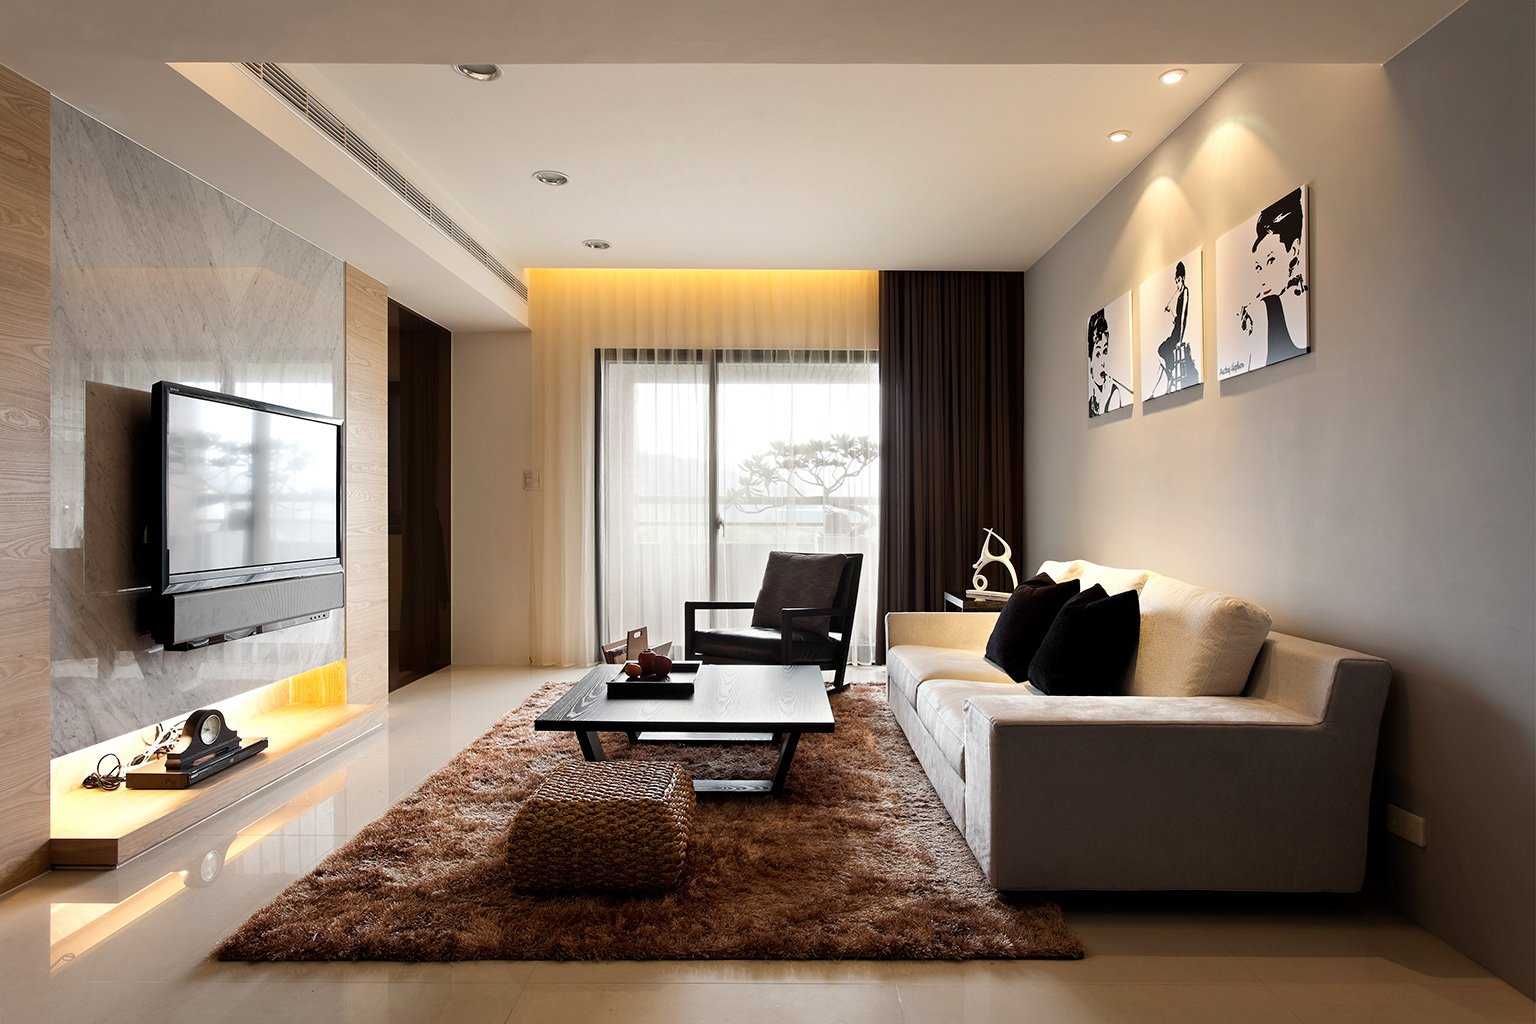 Modern Living Room Decoration Modern Minimalist Decor With A Homey Flow